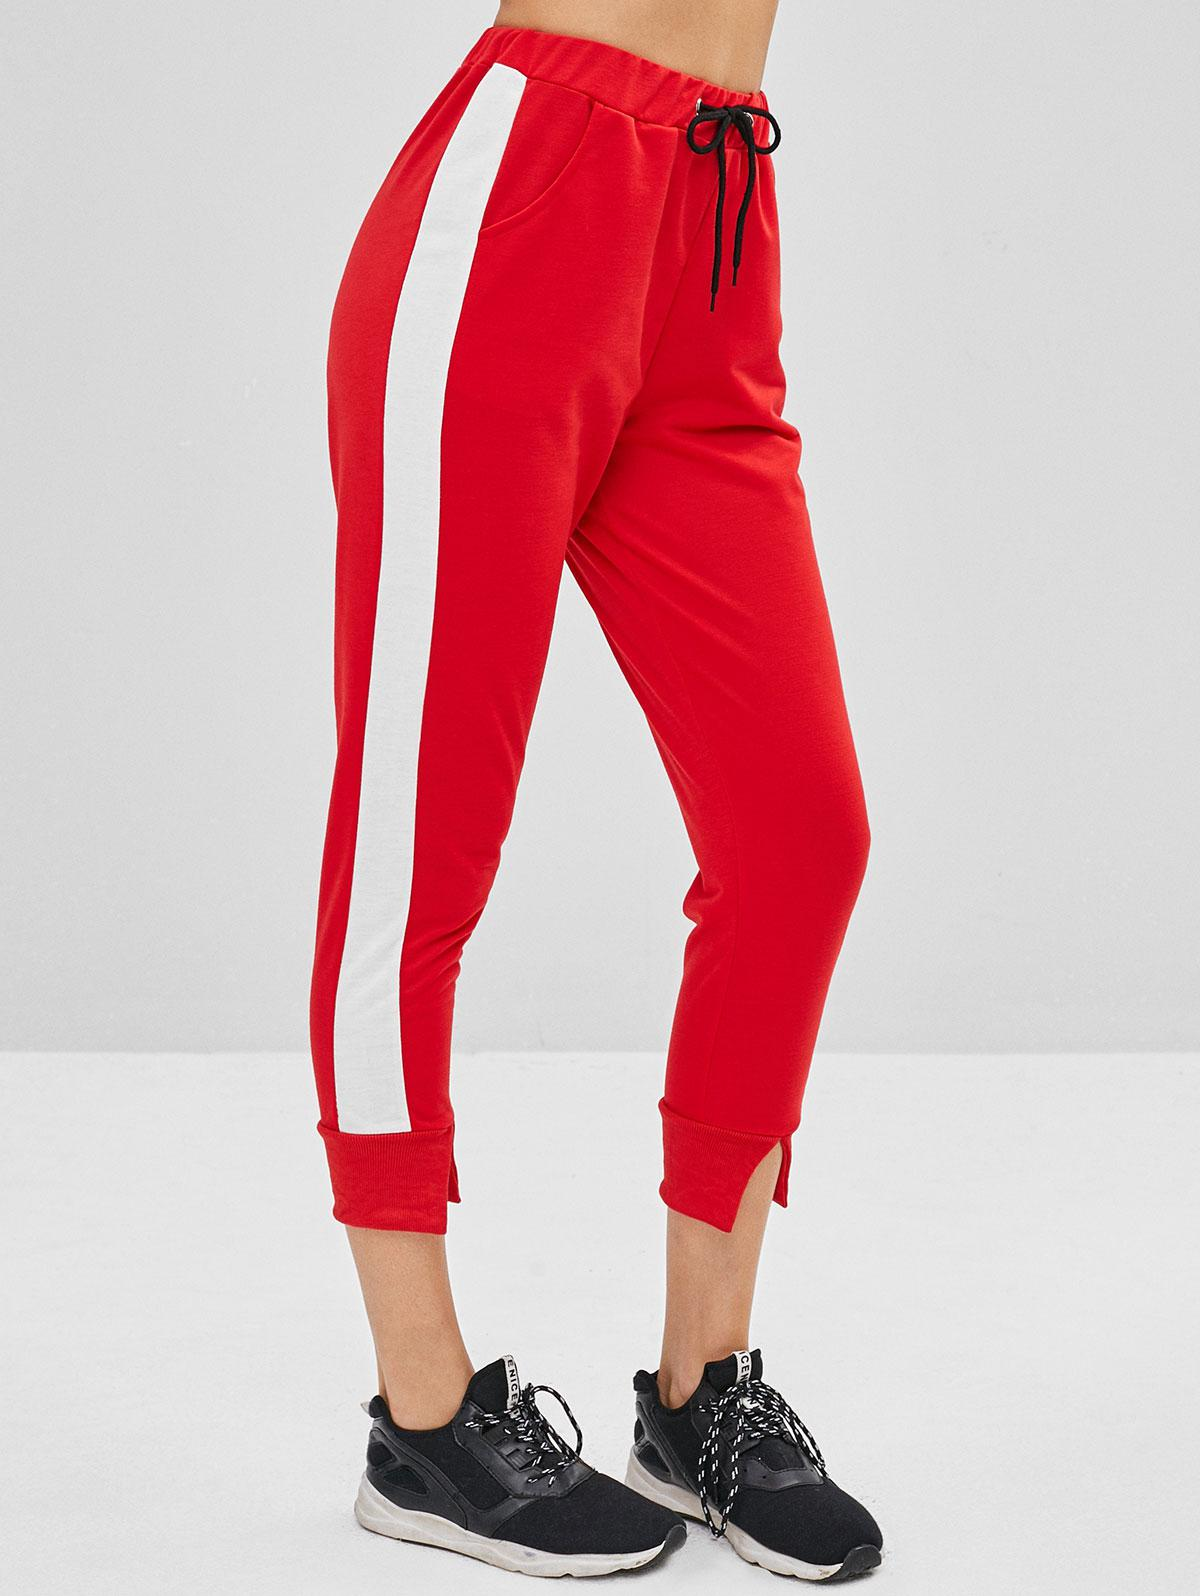 Slit Ankle Drawstring Jogger Pants